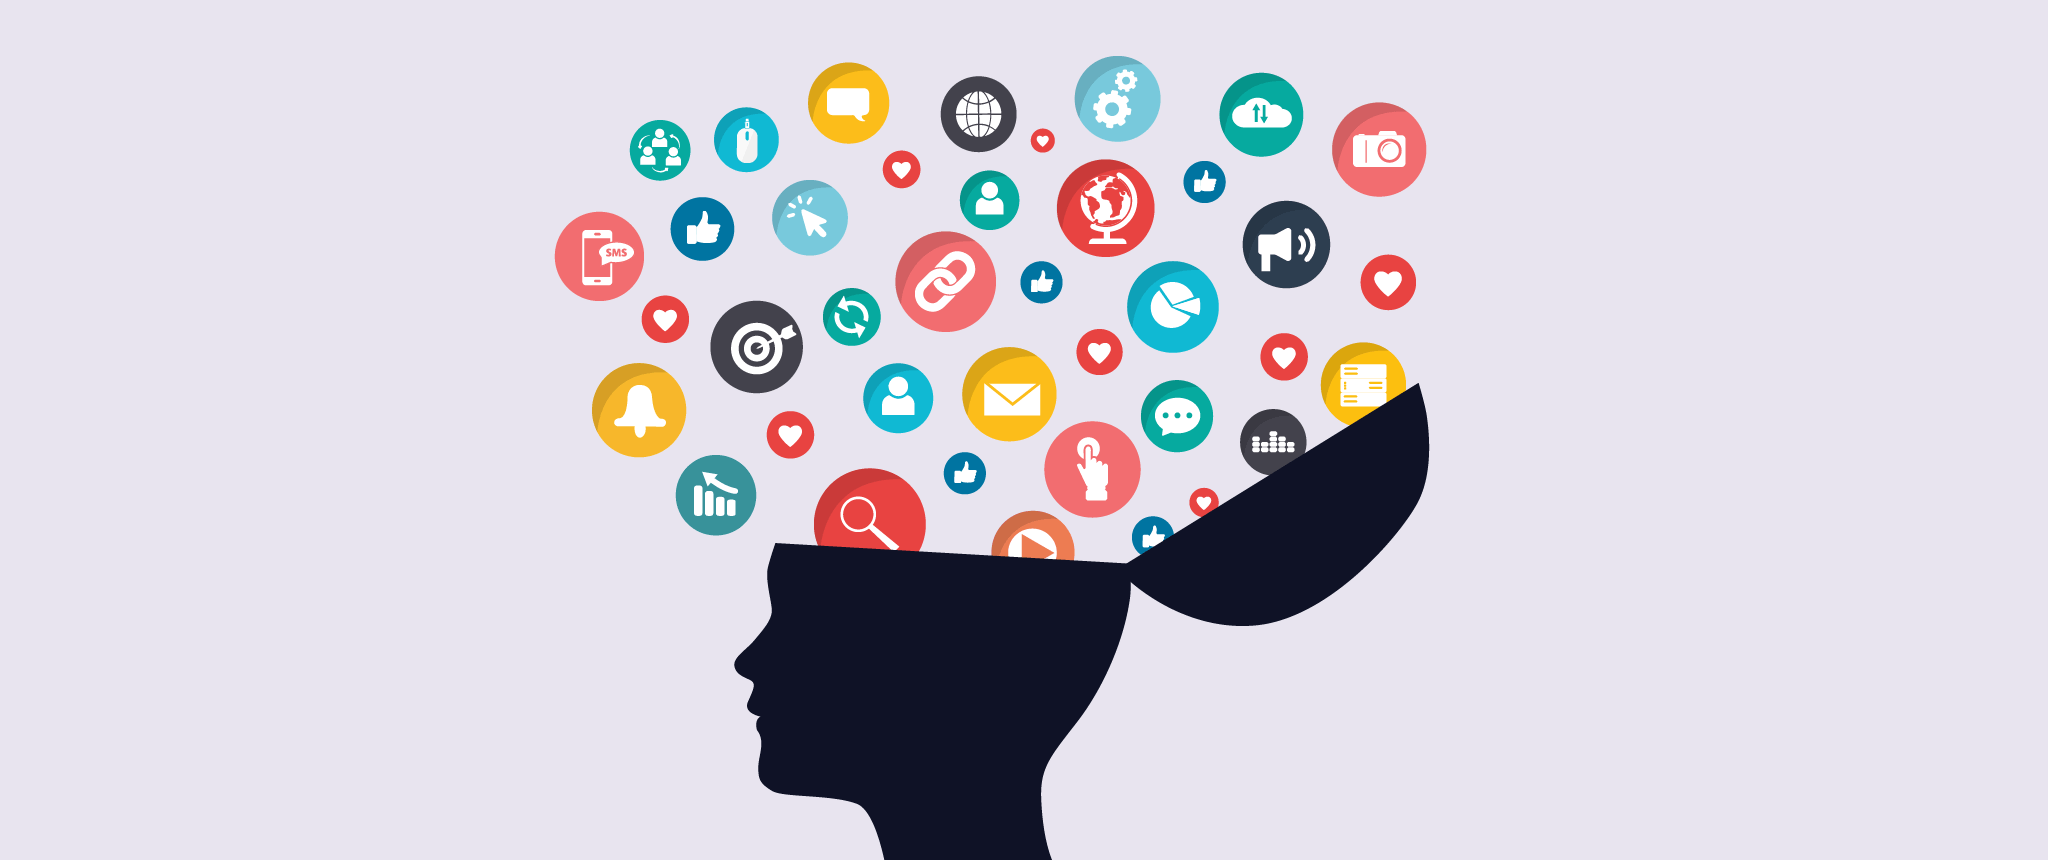 Using Marketing Psychology to Influence App Engagement